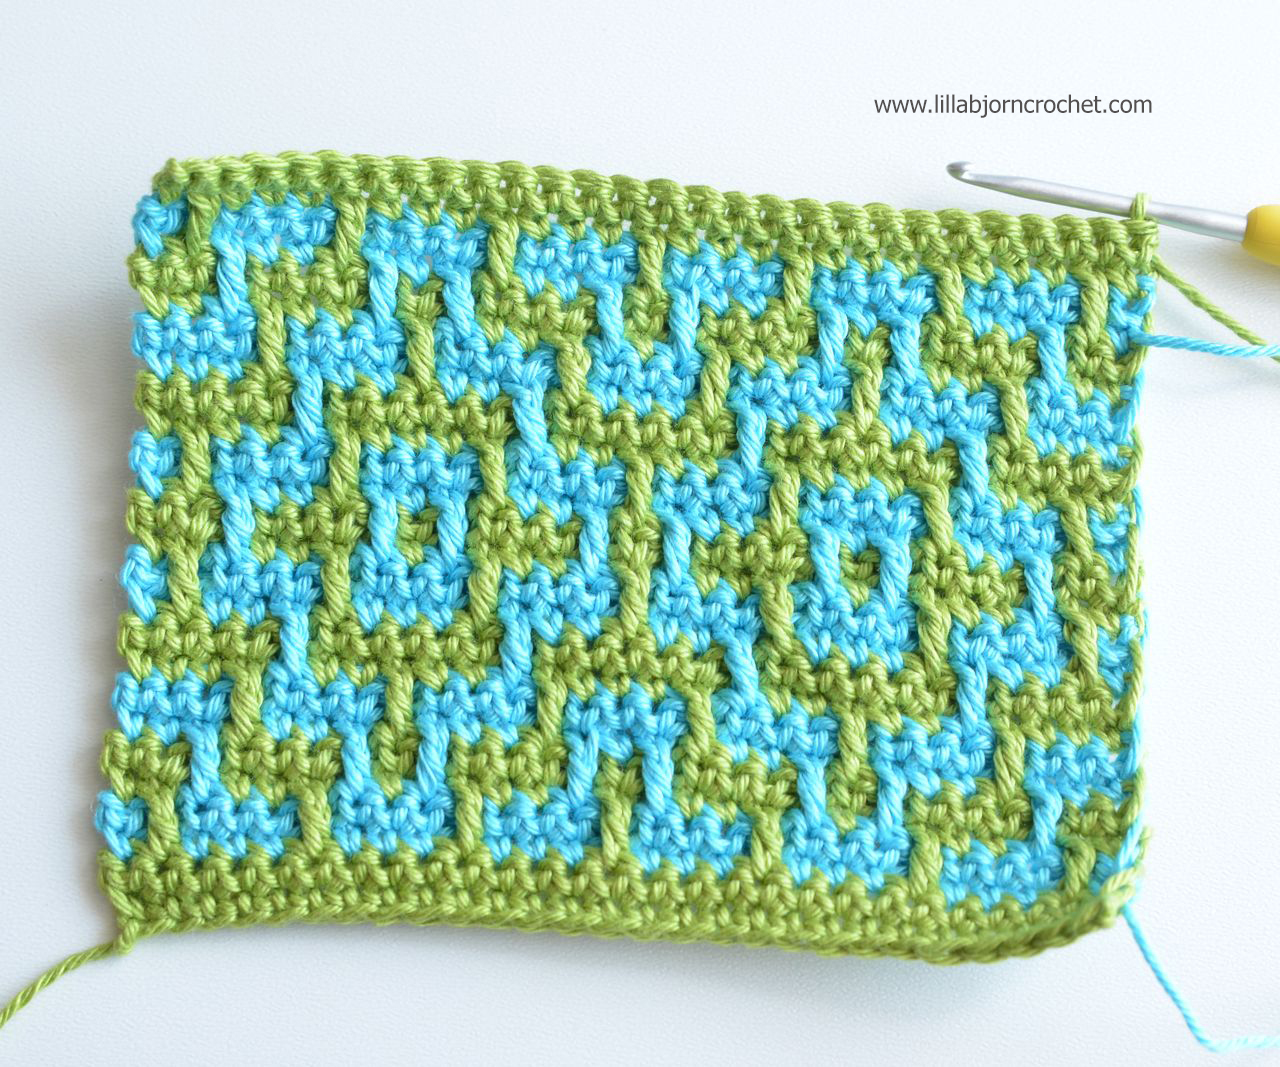 Nya Mosaic Blanket Free Crochet Pattern Lillabjörns Crochet World